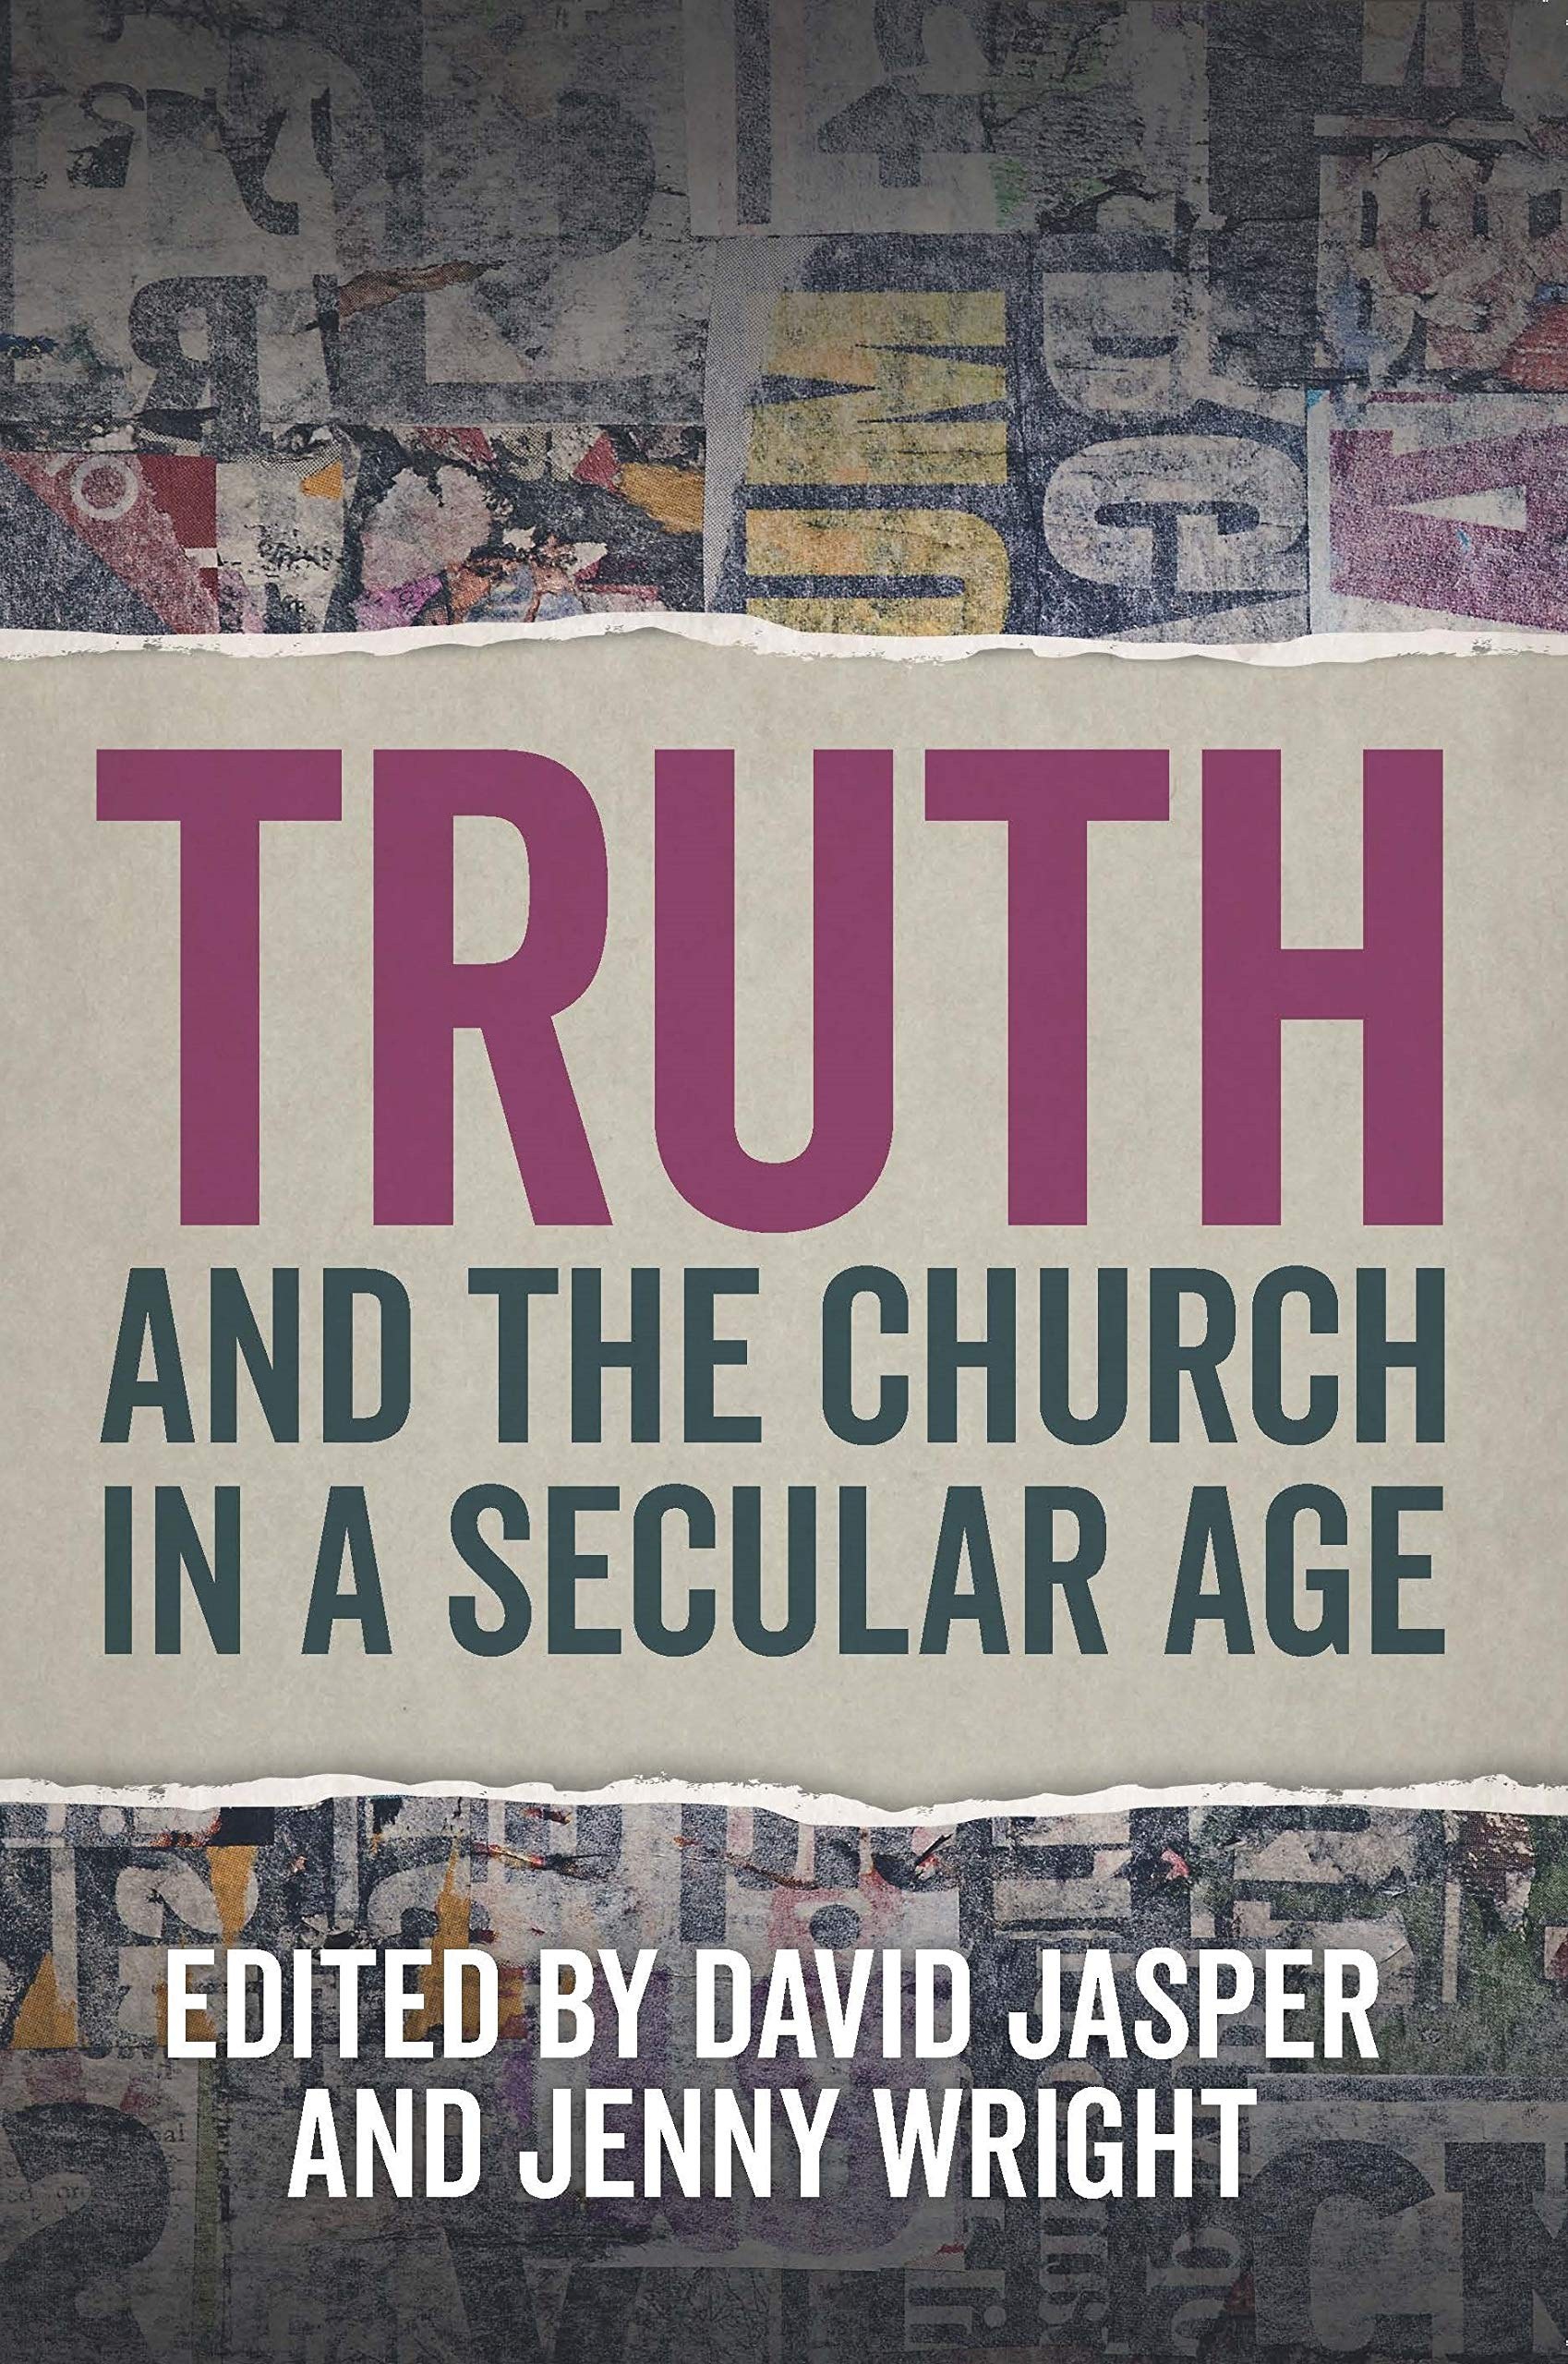 Truth and the church